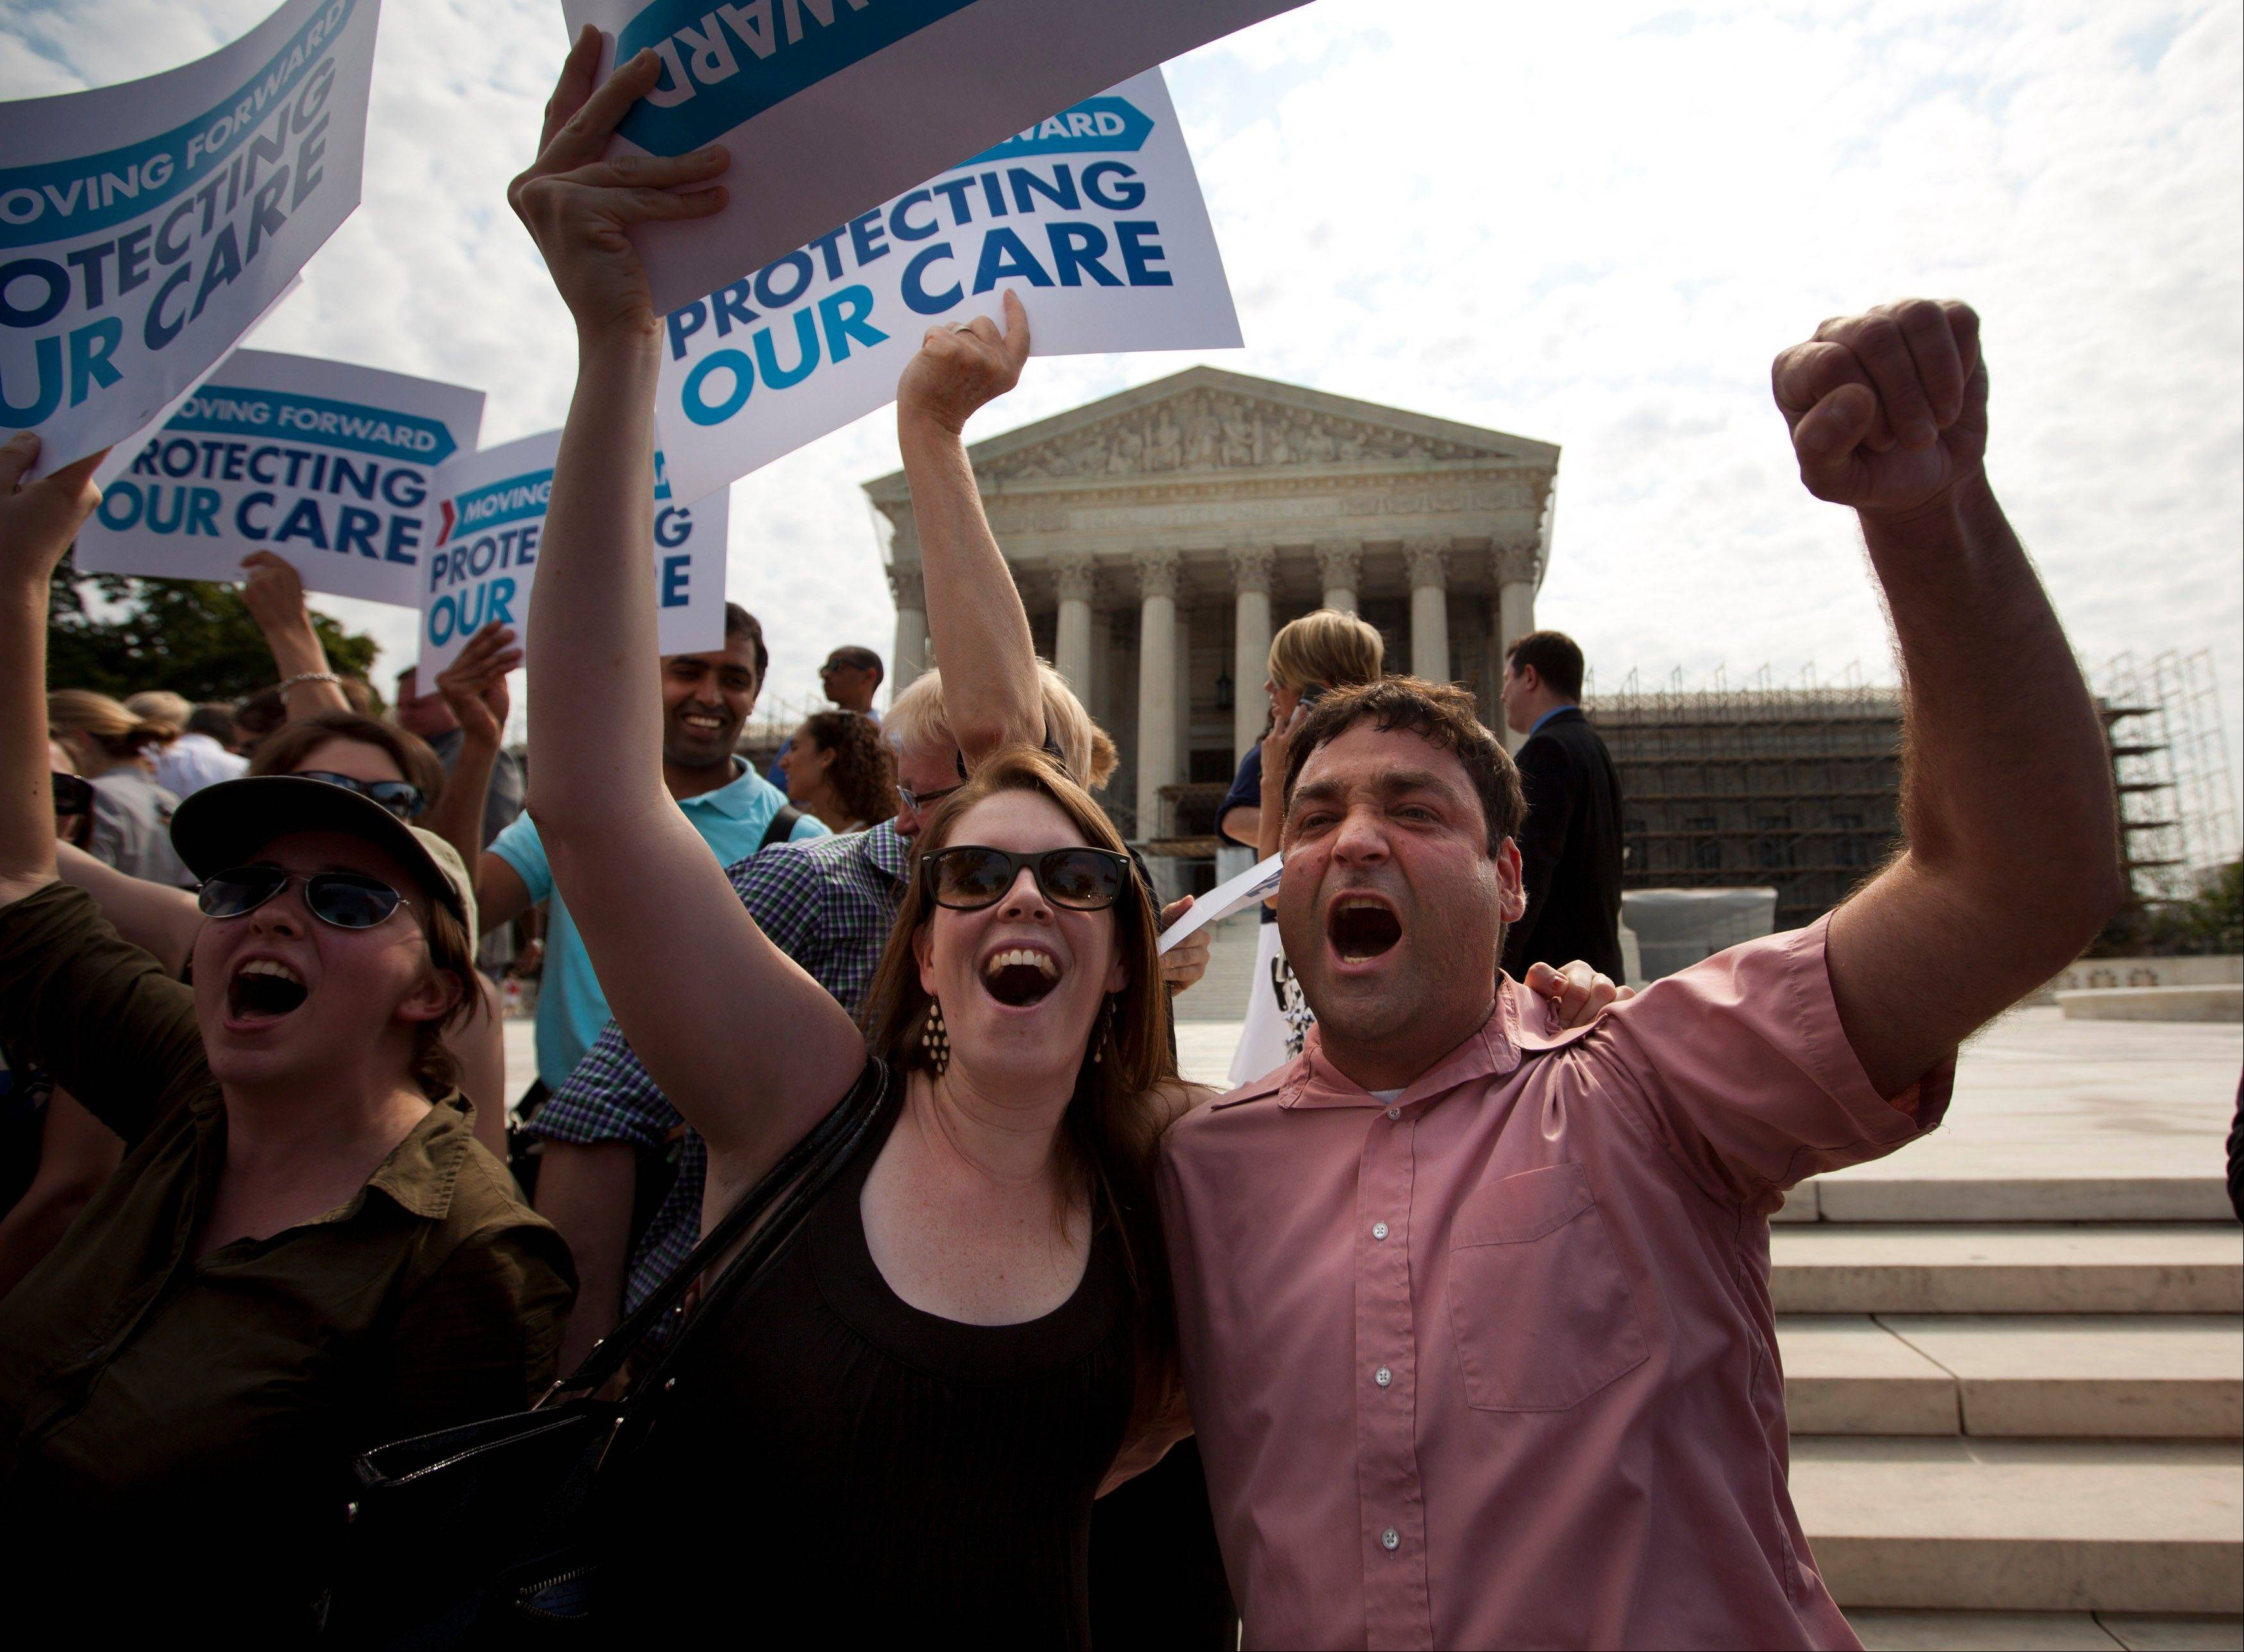 Obama's health law will be judged on 3 questions